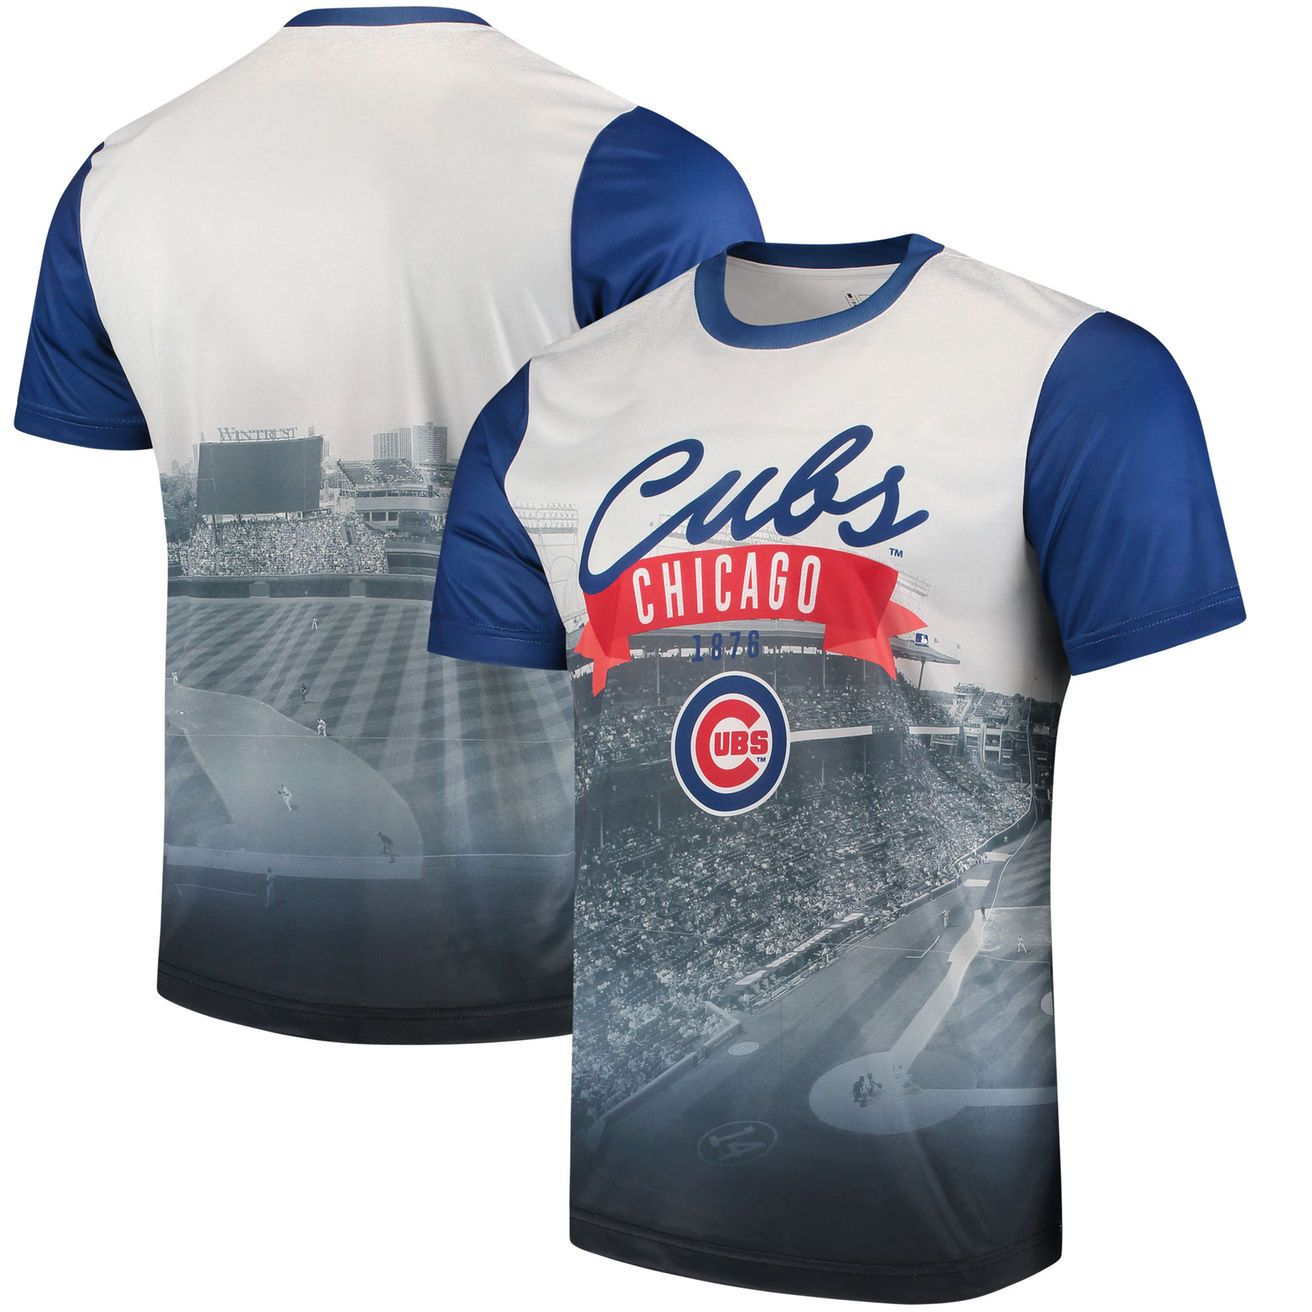 save off 63a66 21873 Men's Chicago Cubs White/Royal Outfield Photo T-Shirt in ...